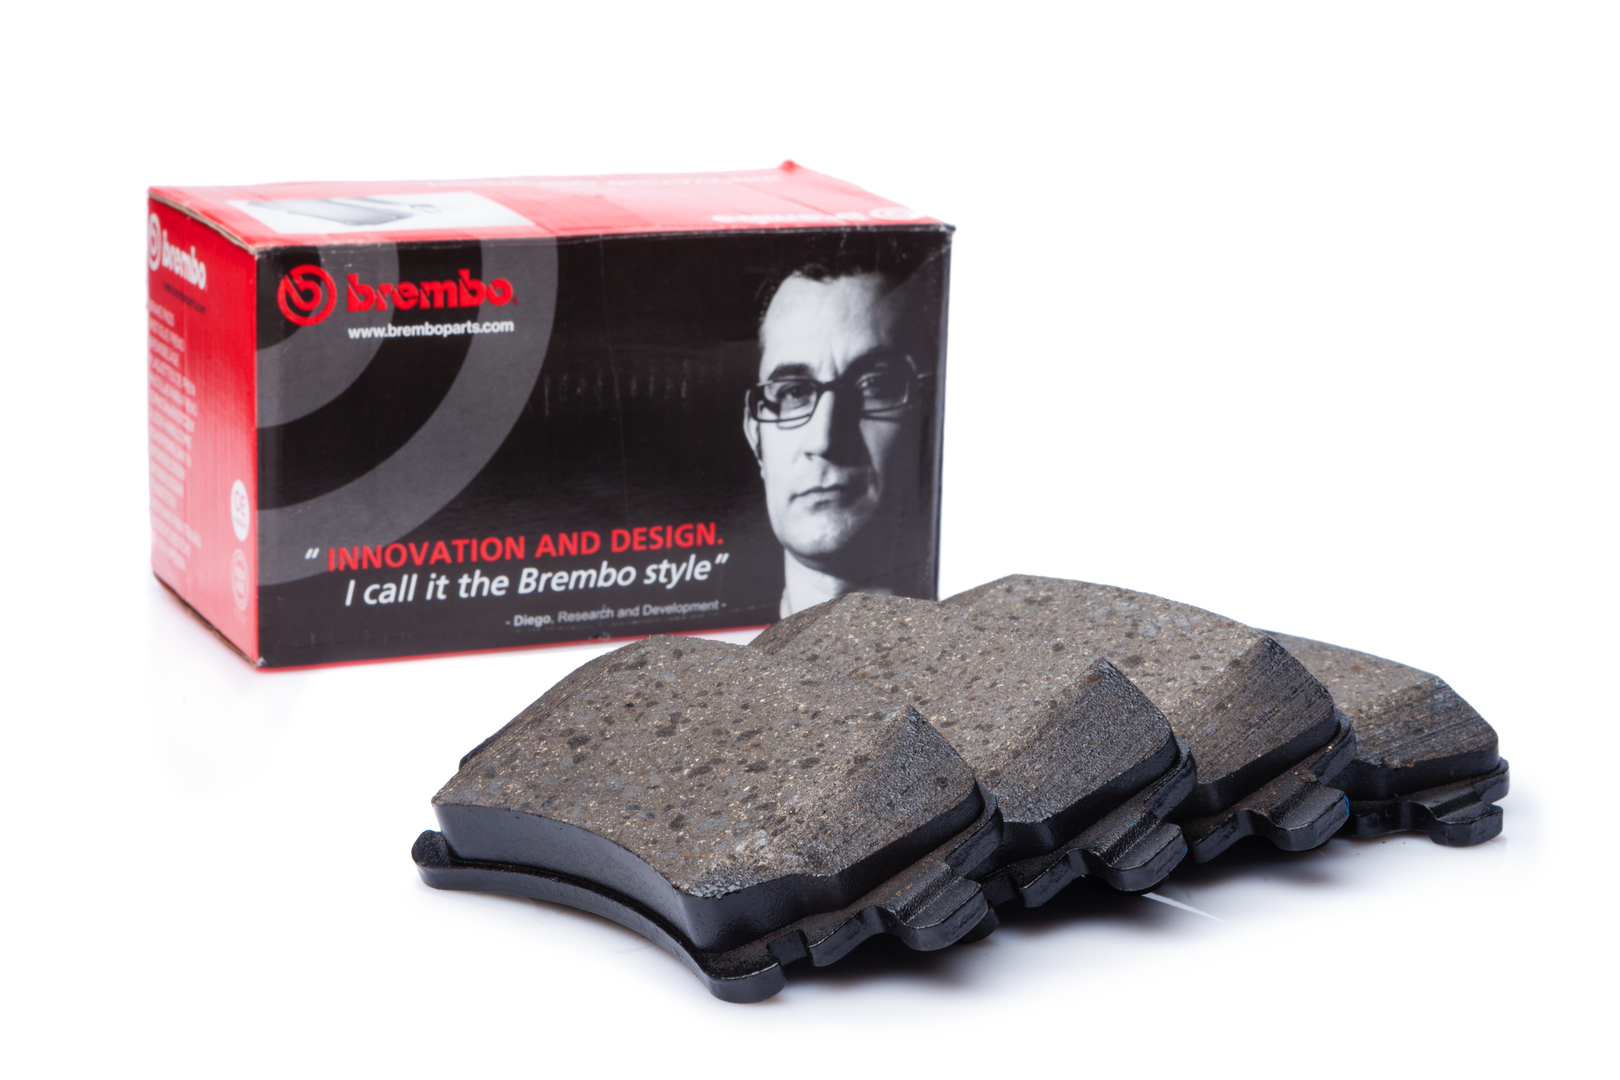 P 24 039 - Brake Pad Set, disc brake